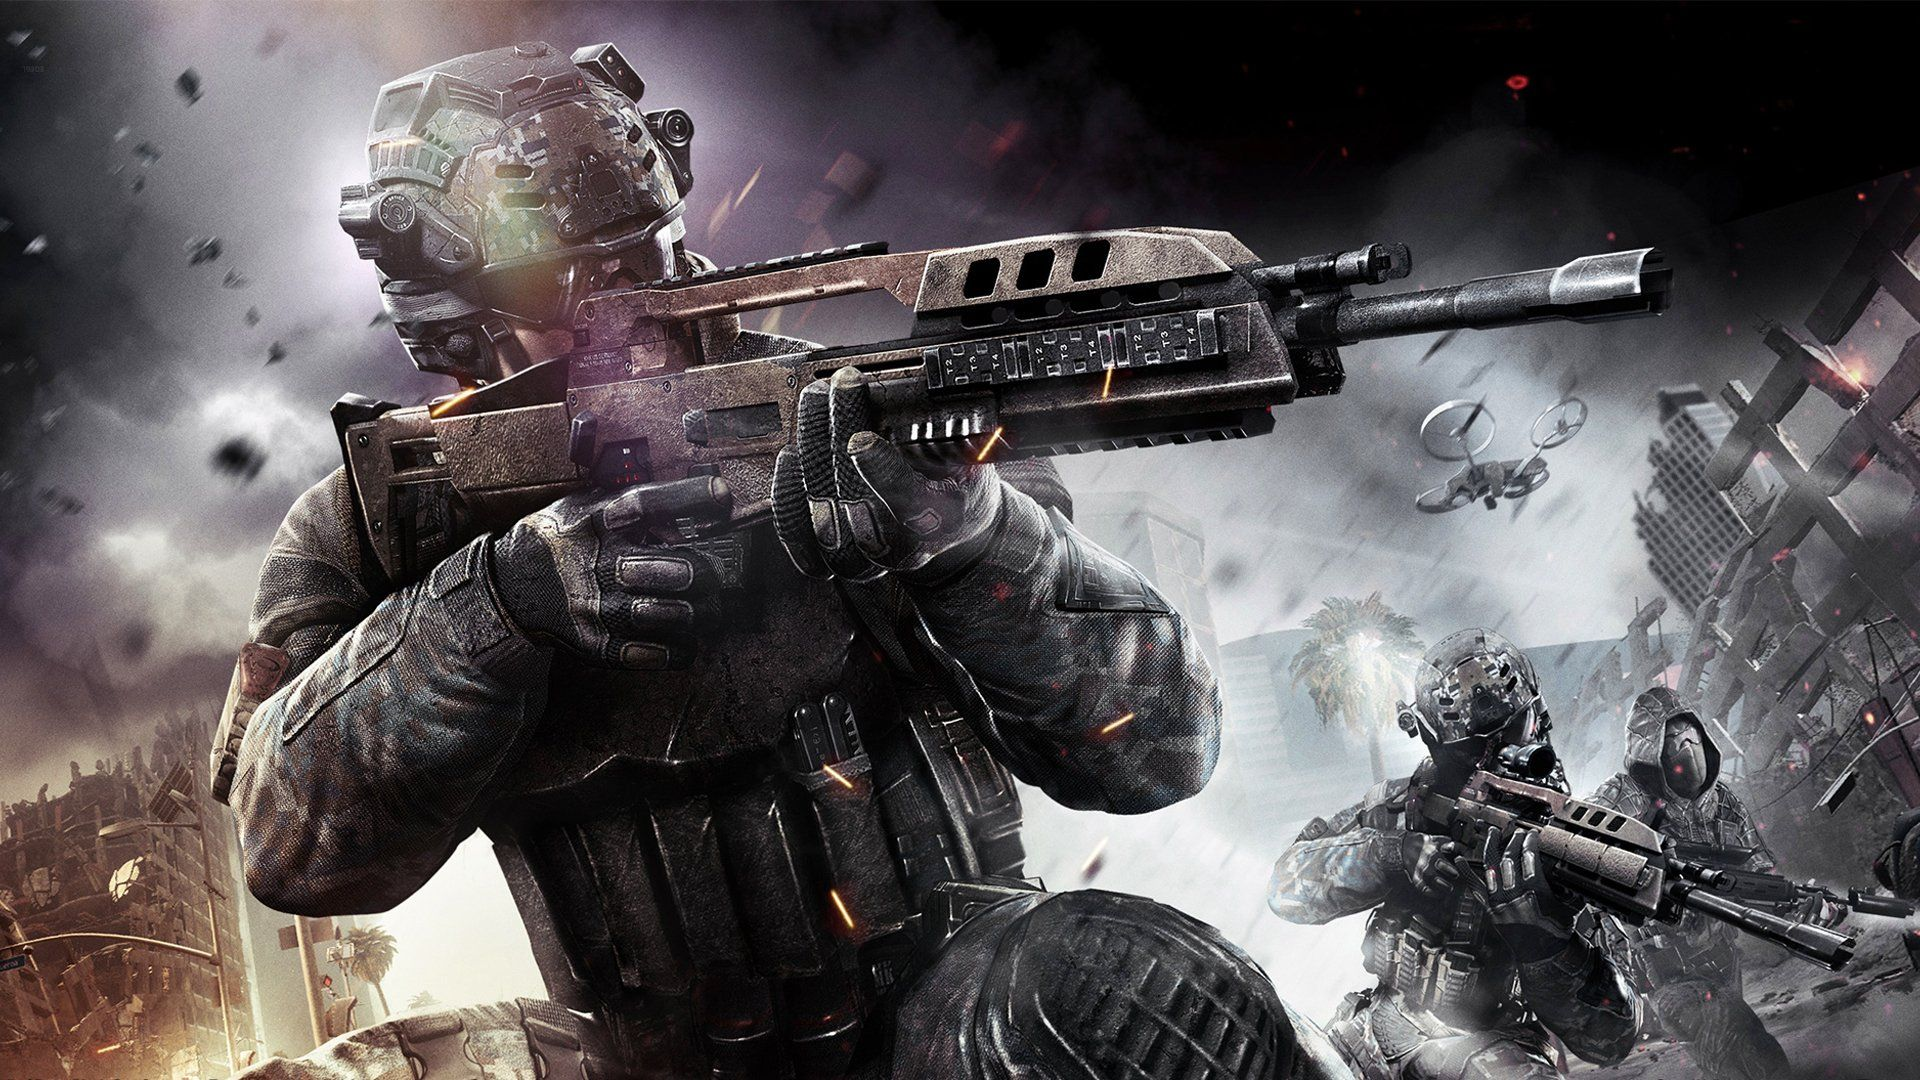 Cool Cod Wallpaper Posted By Ryan Simpson